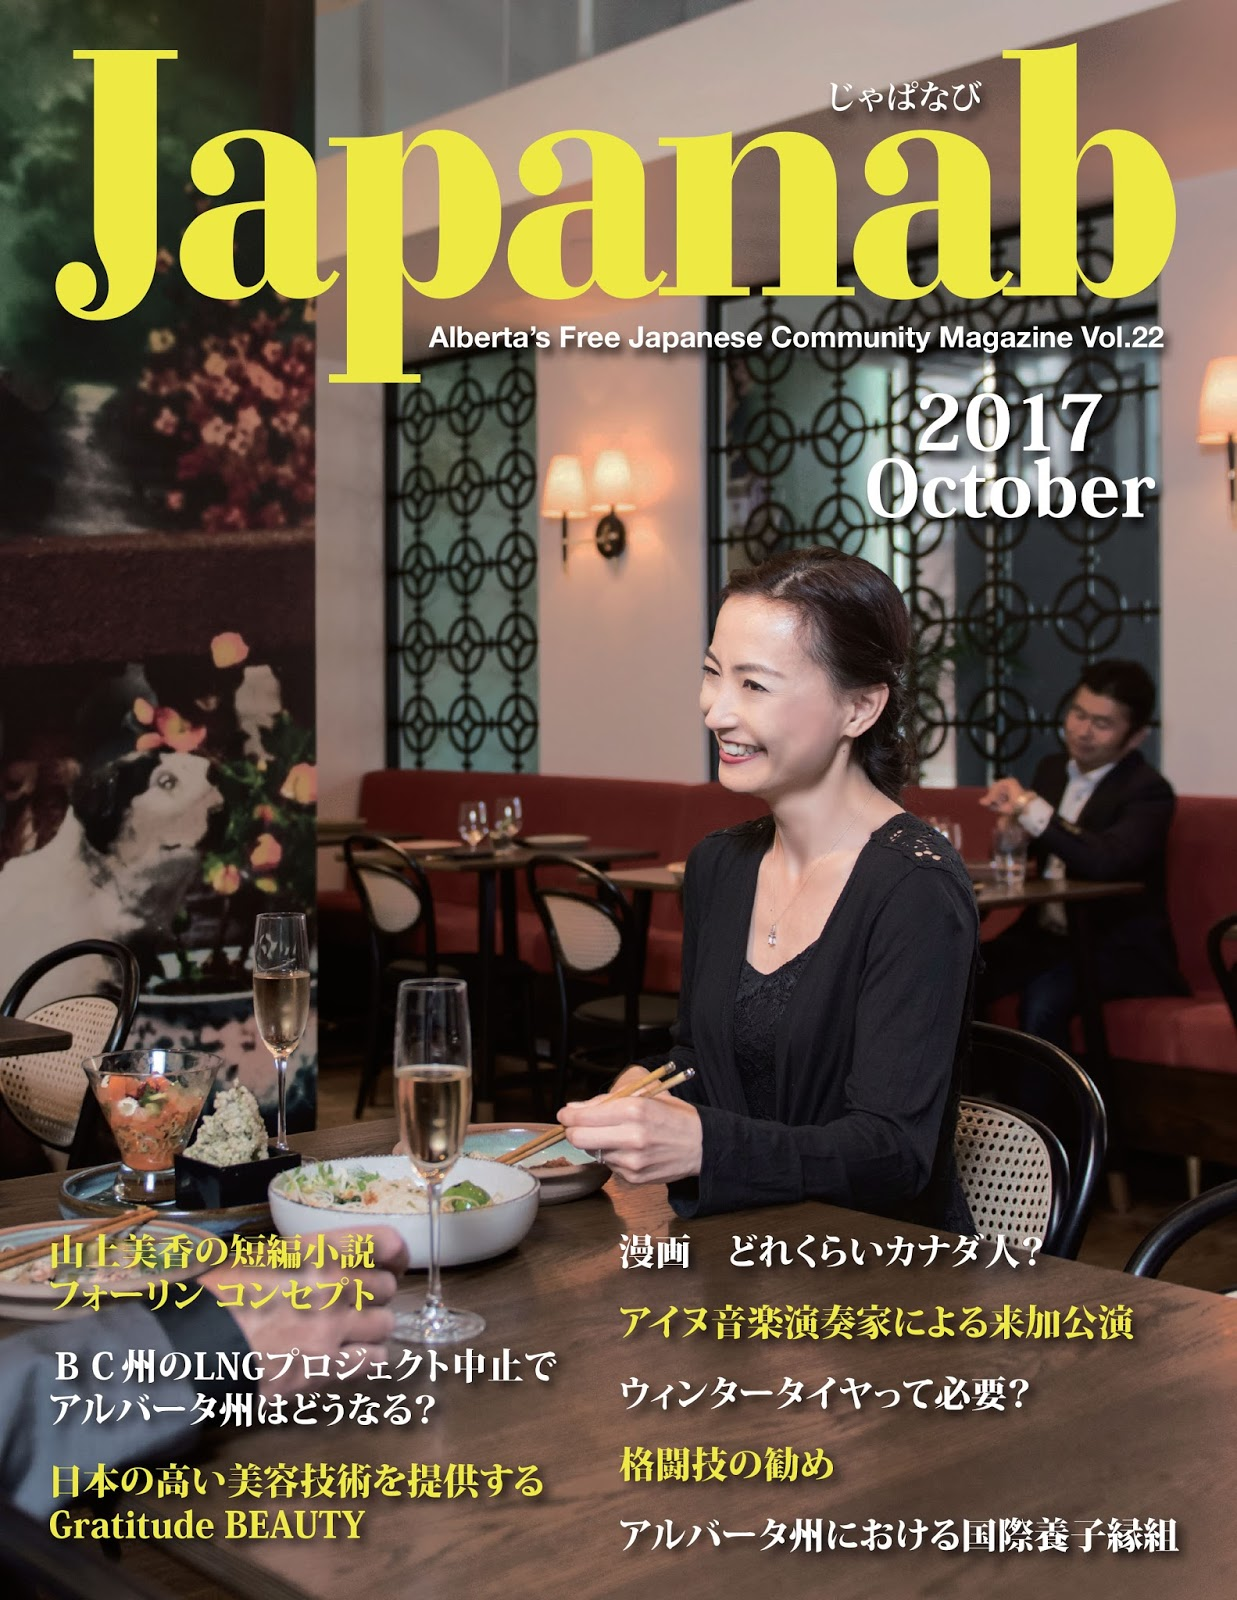 Japanab Vol. 21 - 2017 October